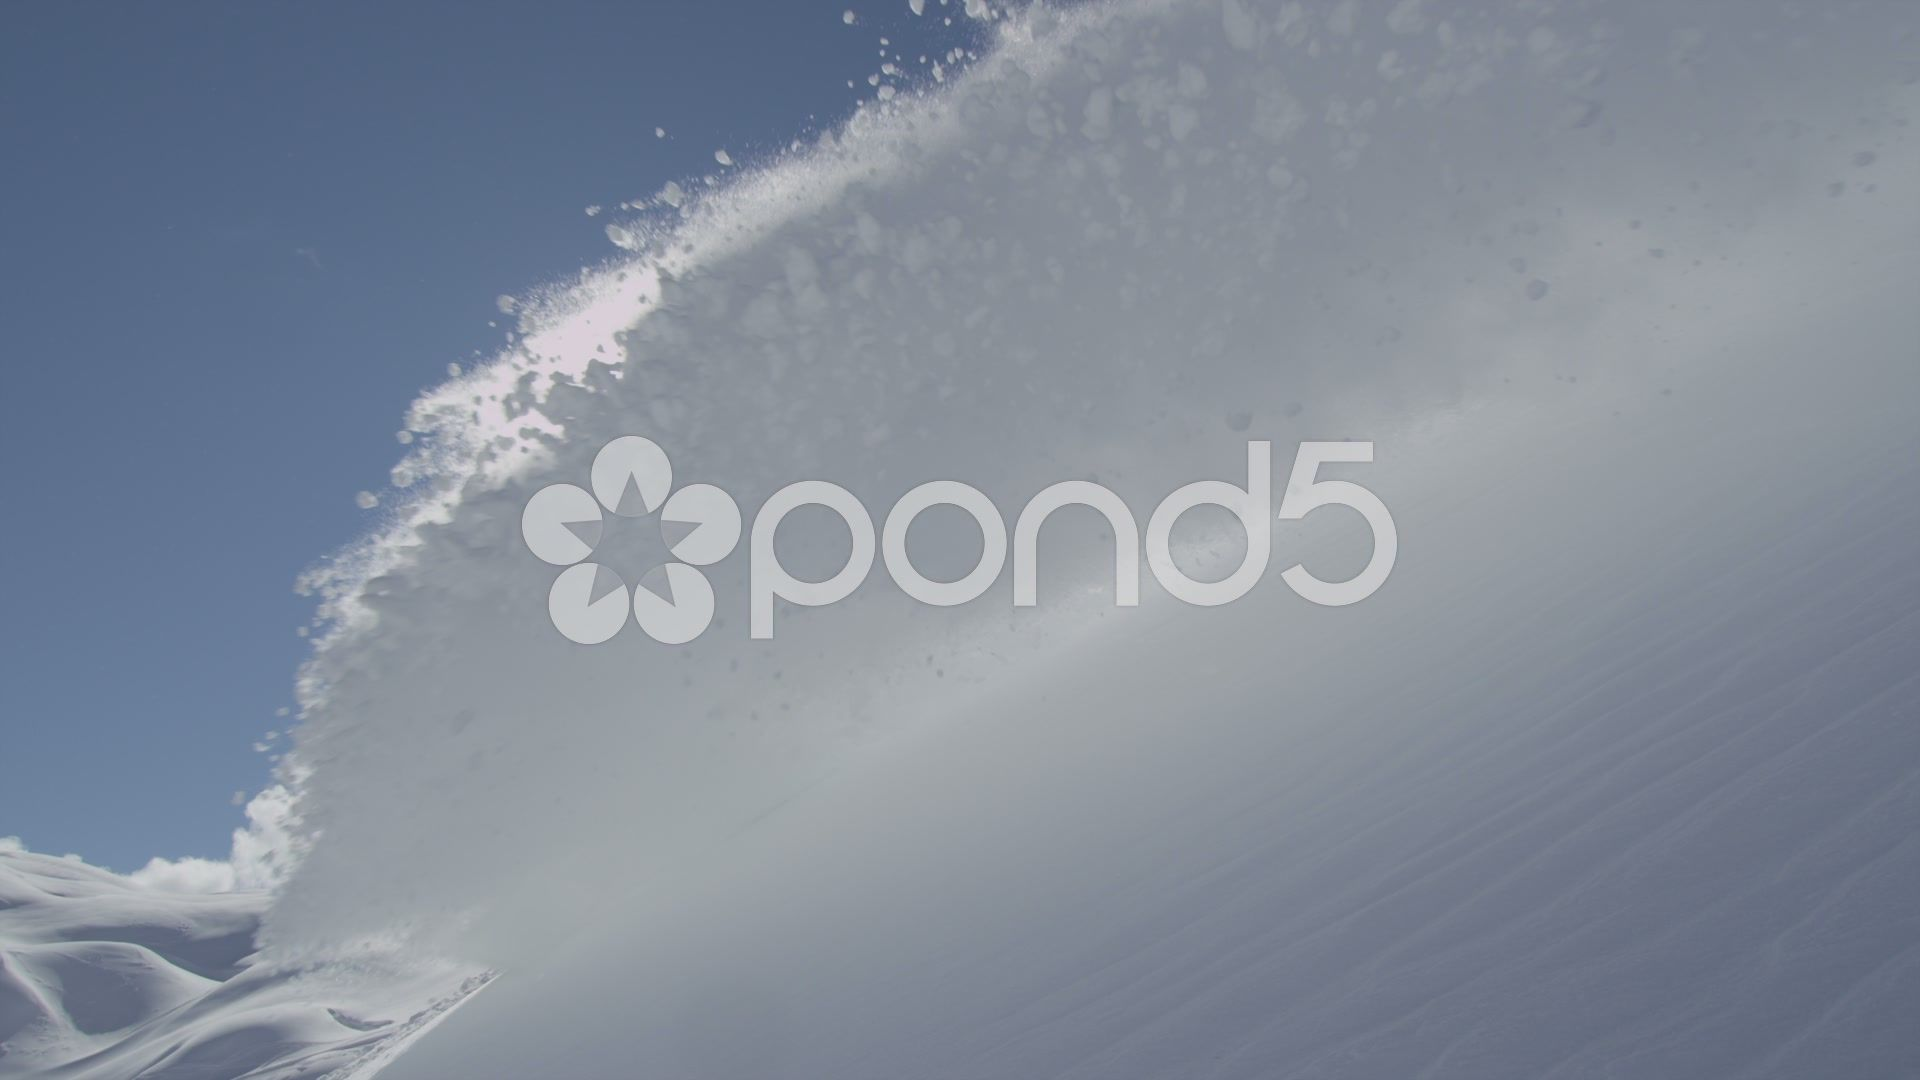 Slow Motion Snow Avalanche Stock Footage Snow Motion Slow Footage Logo Design Vintage Fashion Snow Avalanche